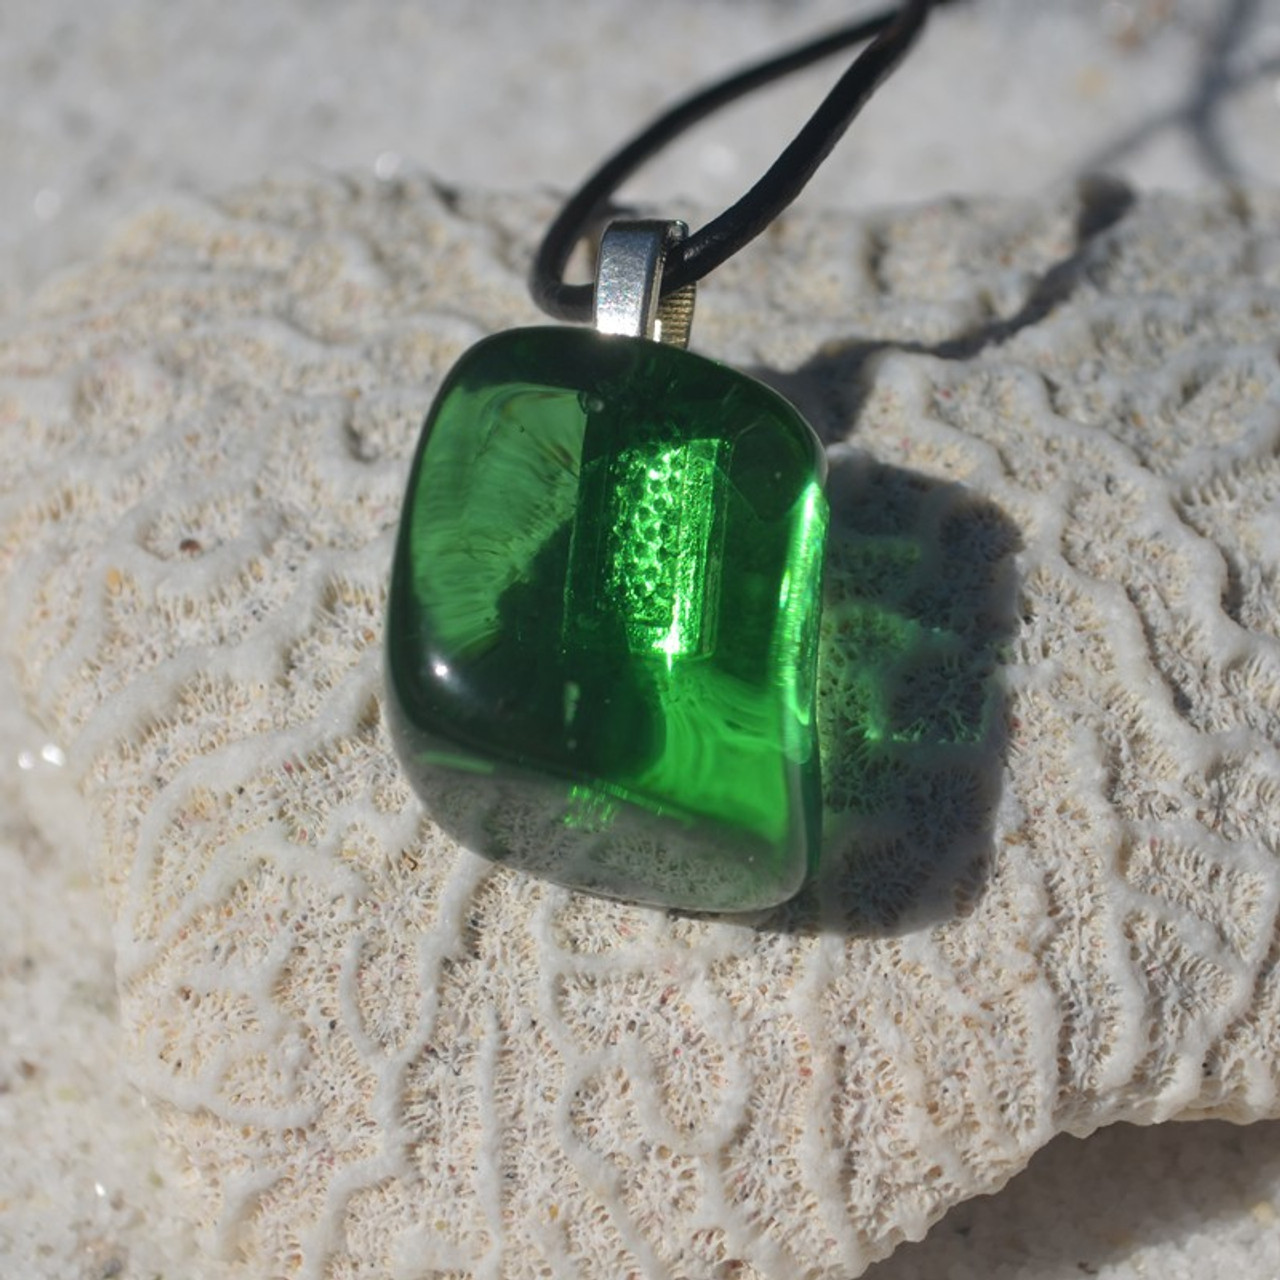 Green Obsidian Pendant and Necklace - Choose Sterling Silver Chain or Leather Cord - Quantity of 1 - Made to Order